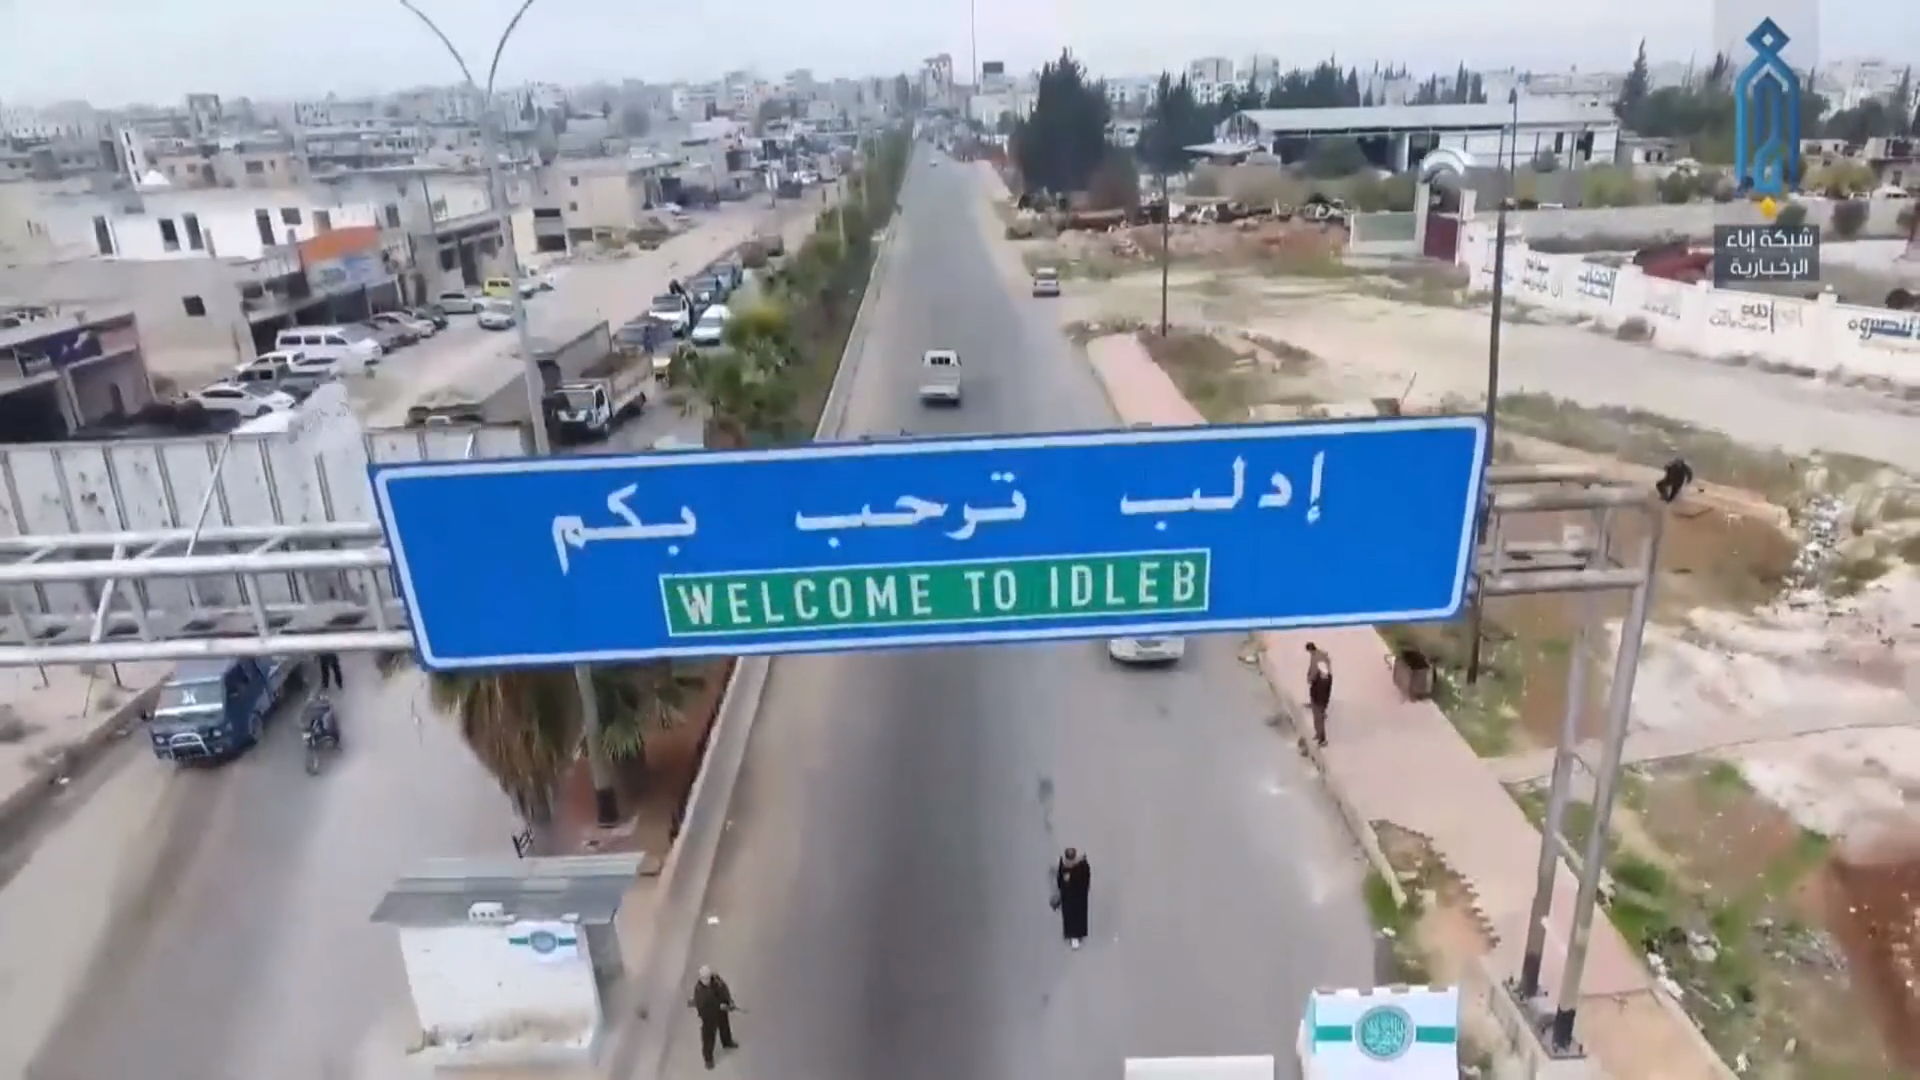 The jihadis of idlib: a militant state within a state